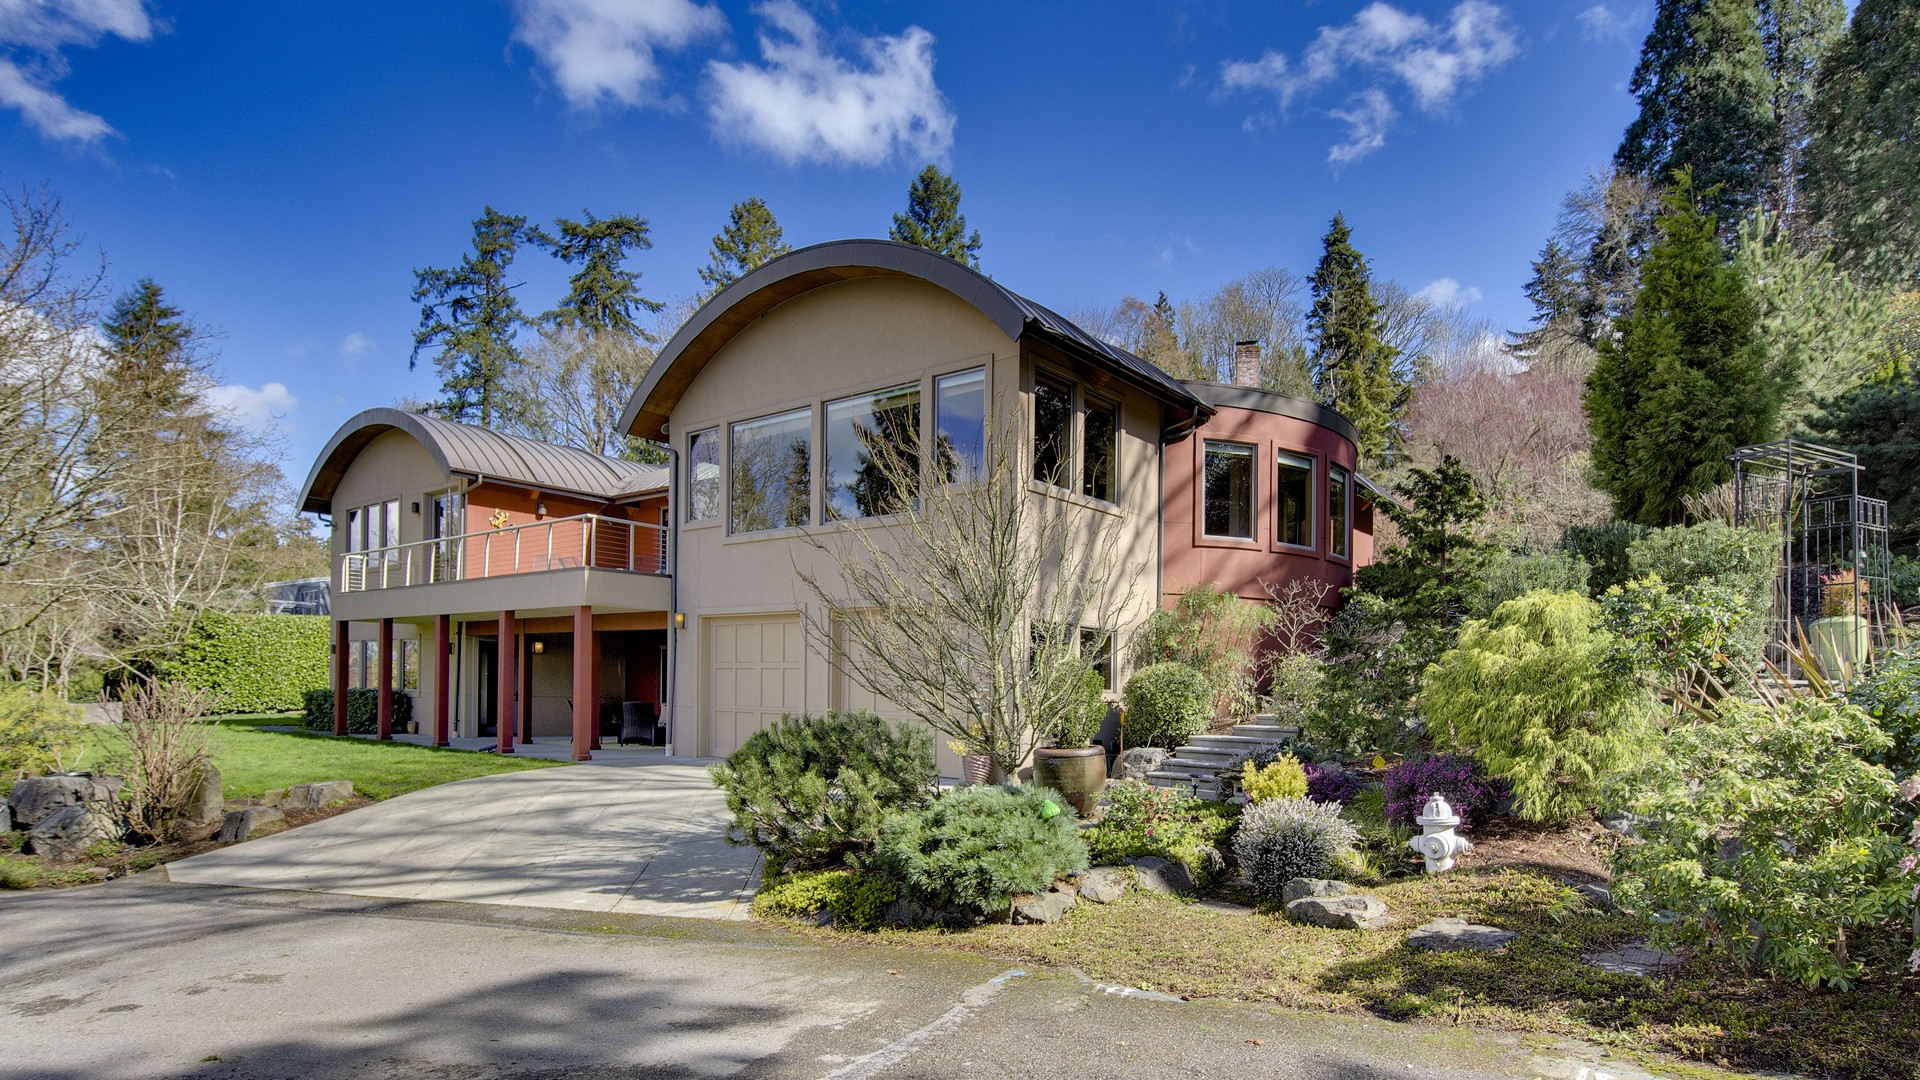 Single Family Home for Sale at Luxury Mercer Island Home 5335 W Mercer Wy Mercer Island, Washington 98040 United States